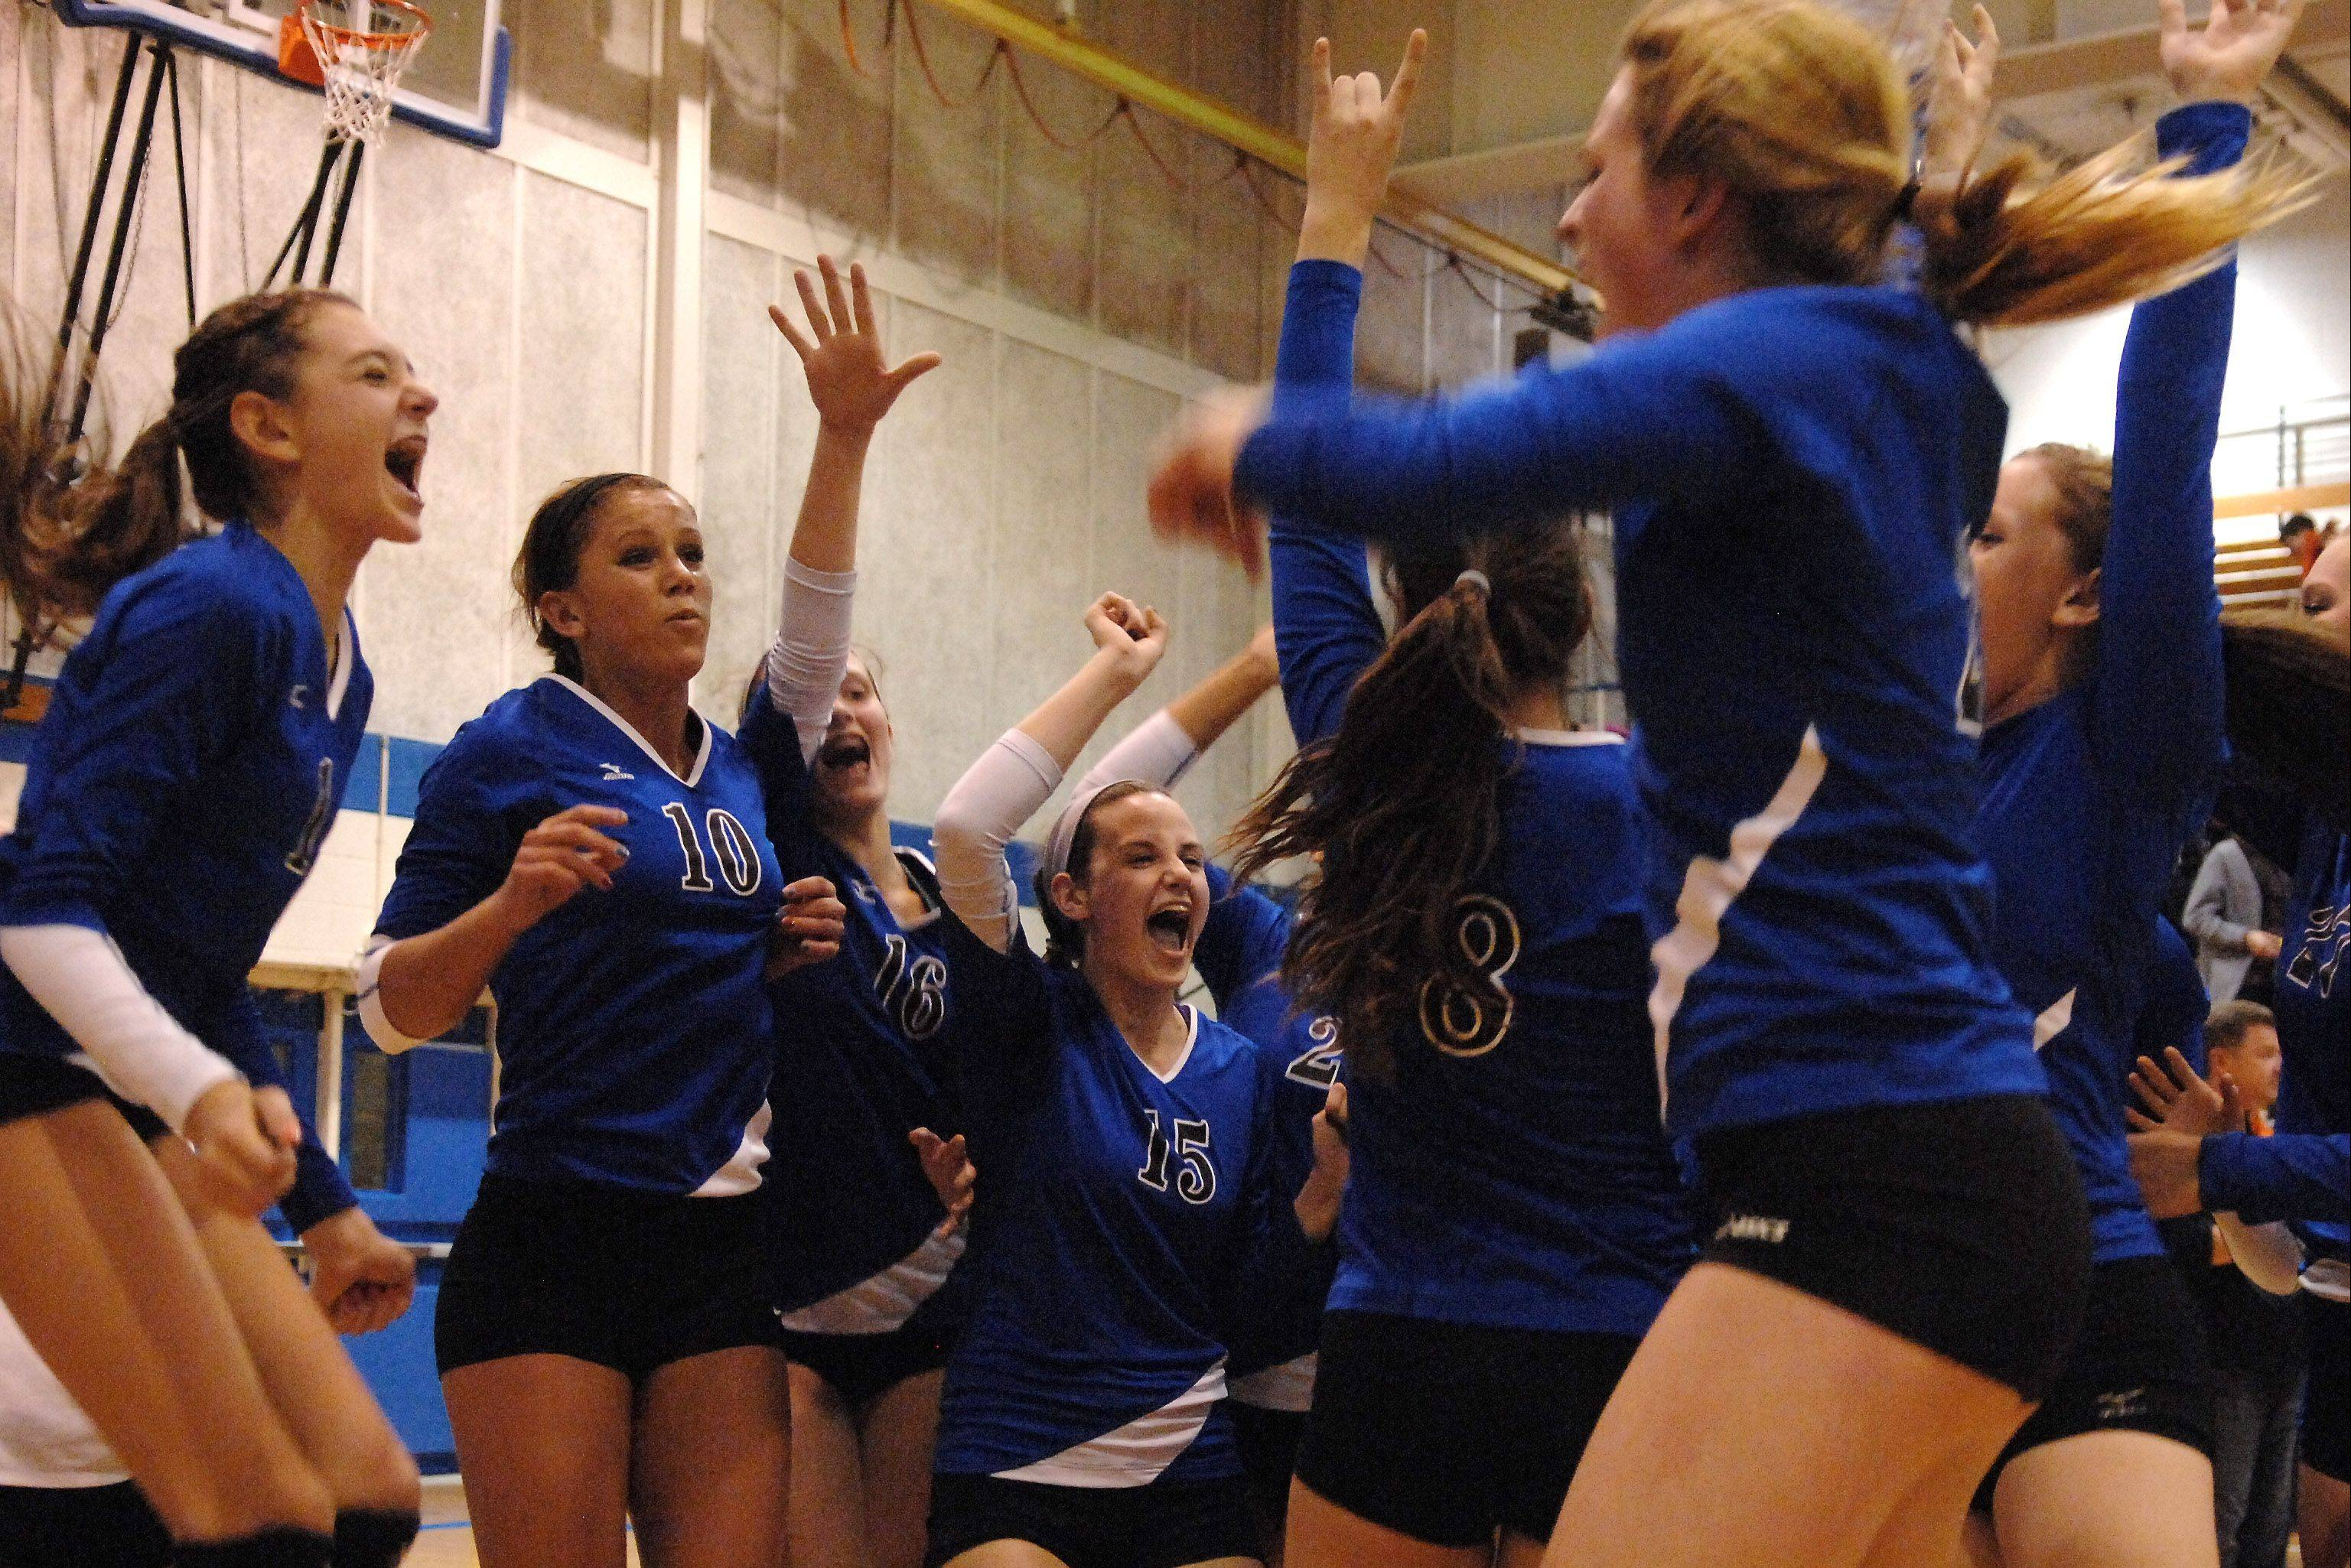 Geneva celebrates its victory over St. Charles East at Tuesday�s sectional semifinals at Larkin.